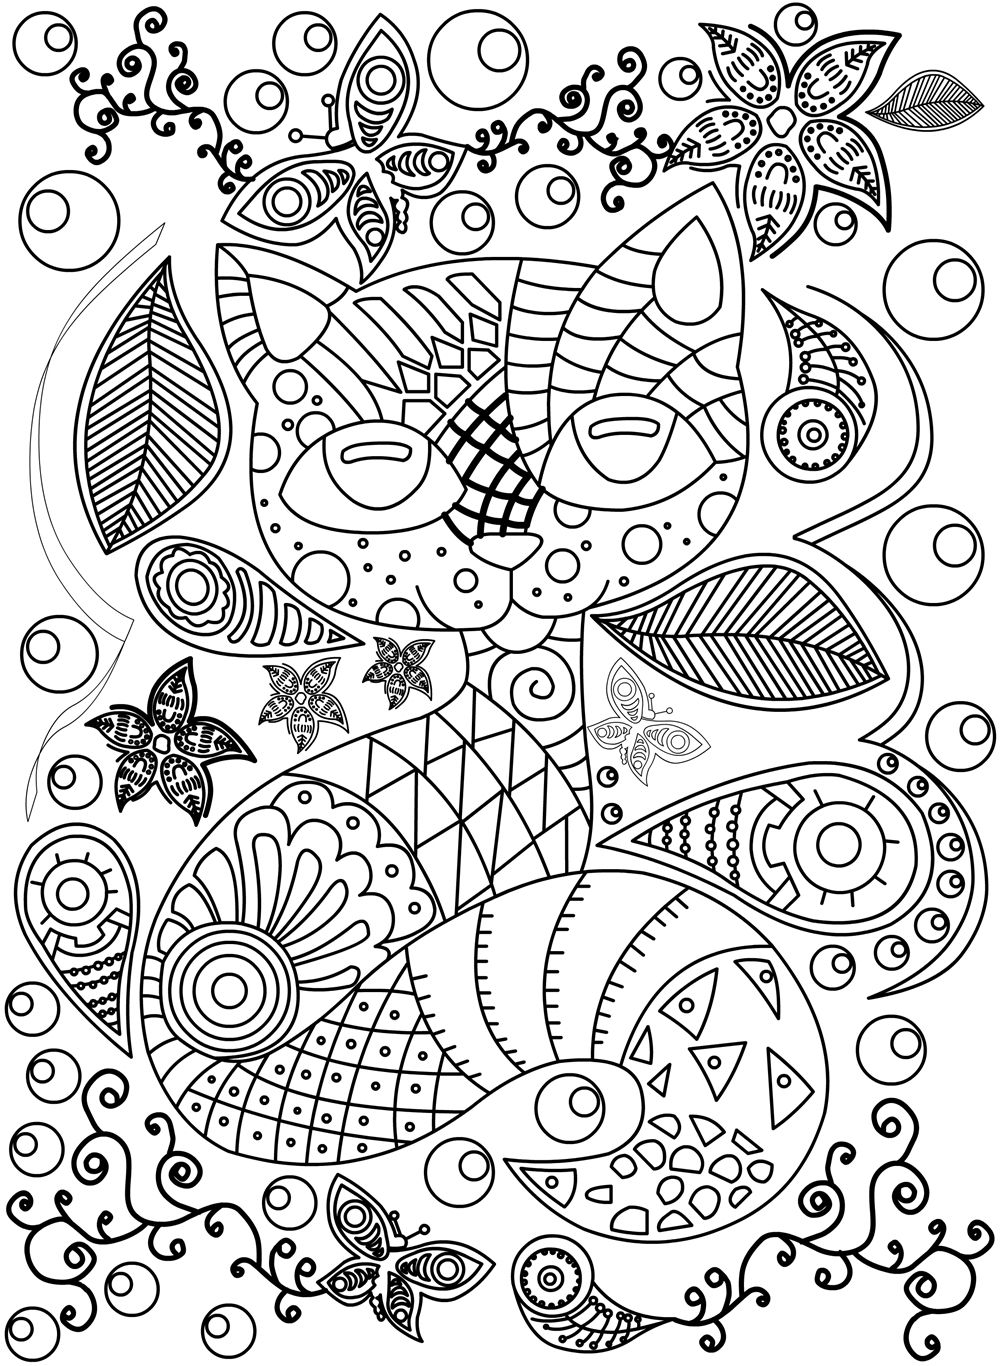 Stress relieving cats coloring - Adult Coloring Book Stress Relieving Cats